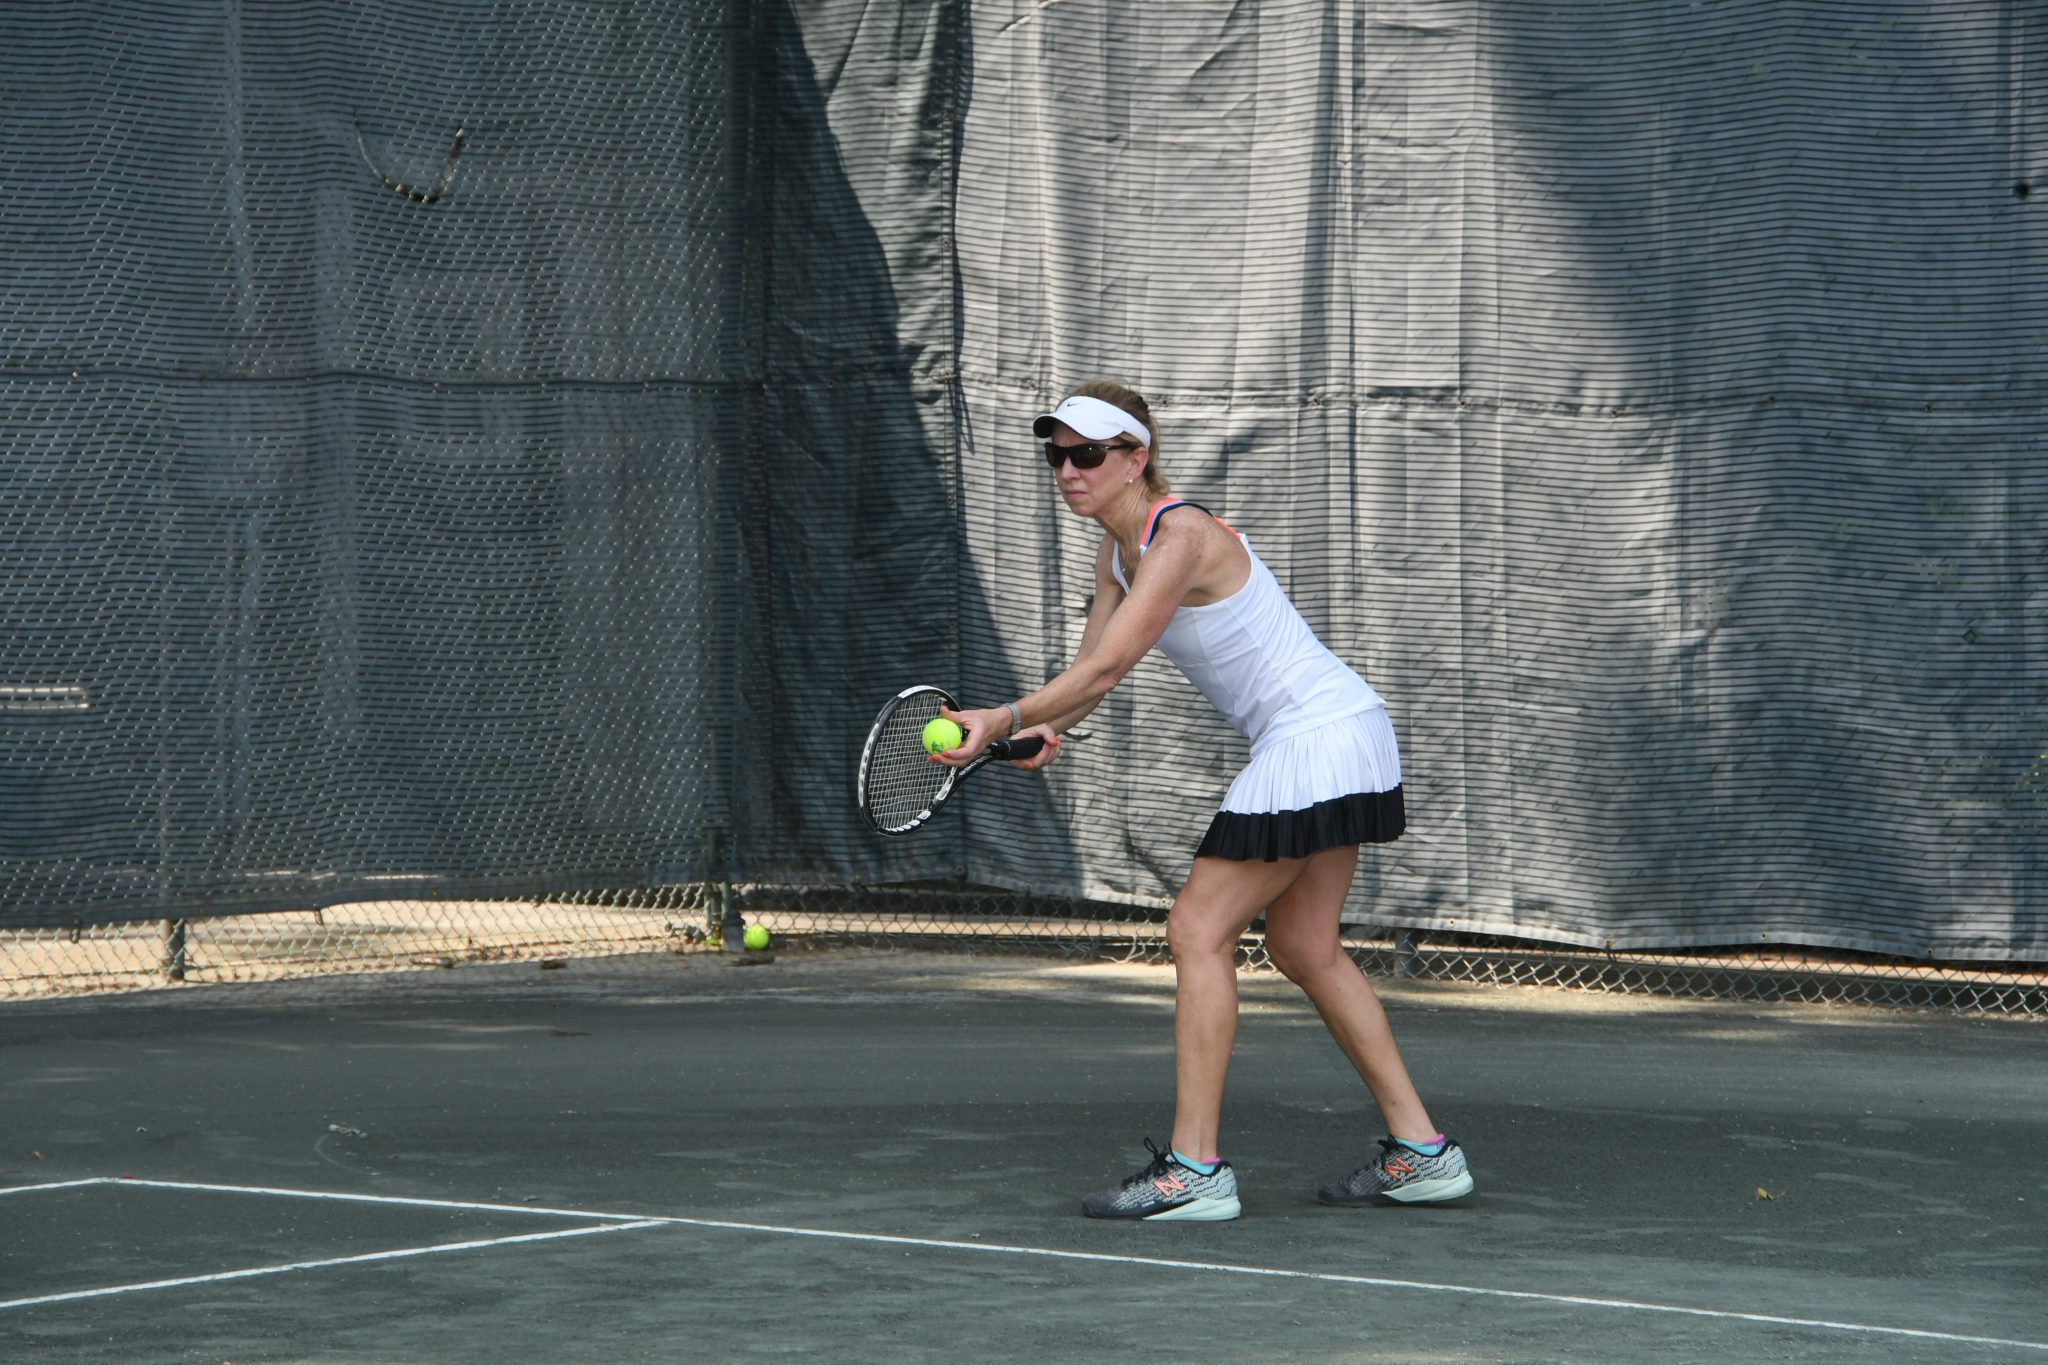 Displaying A tennis player readies her serve.JPG